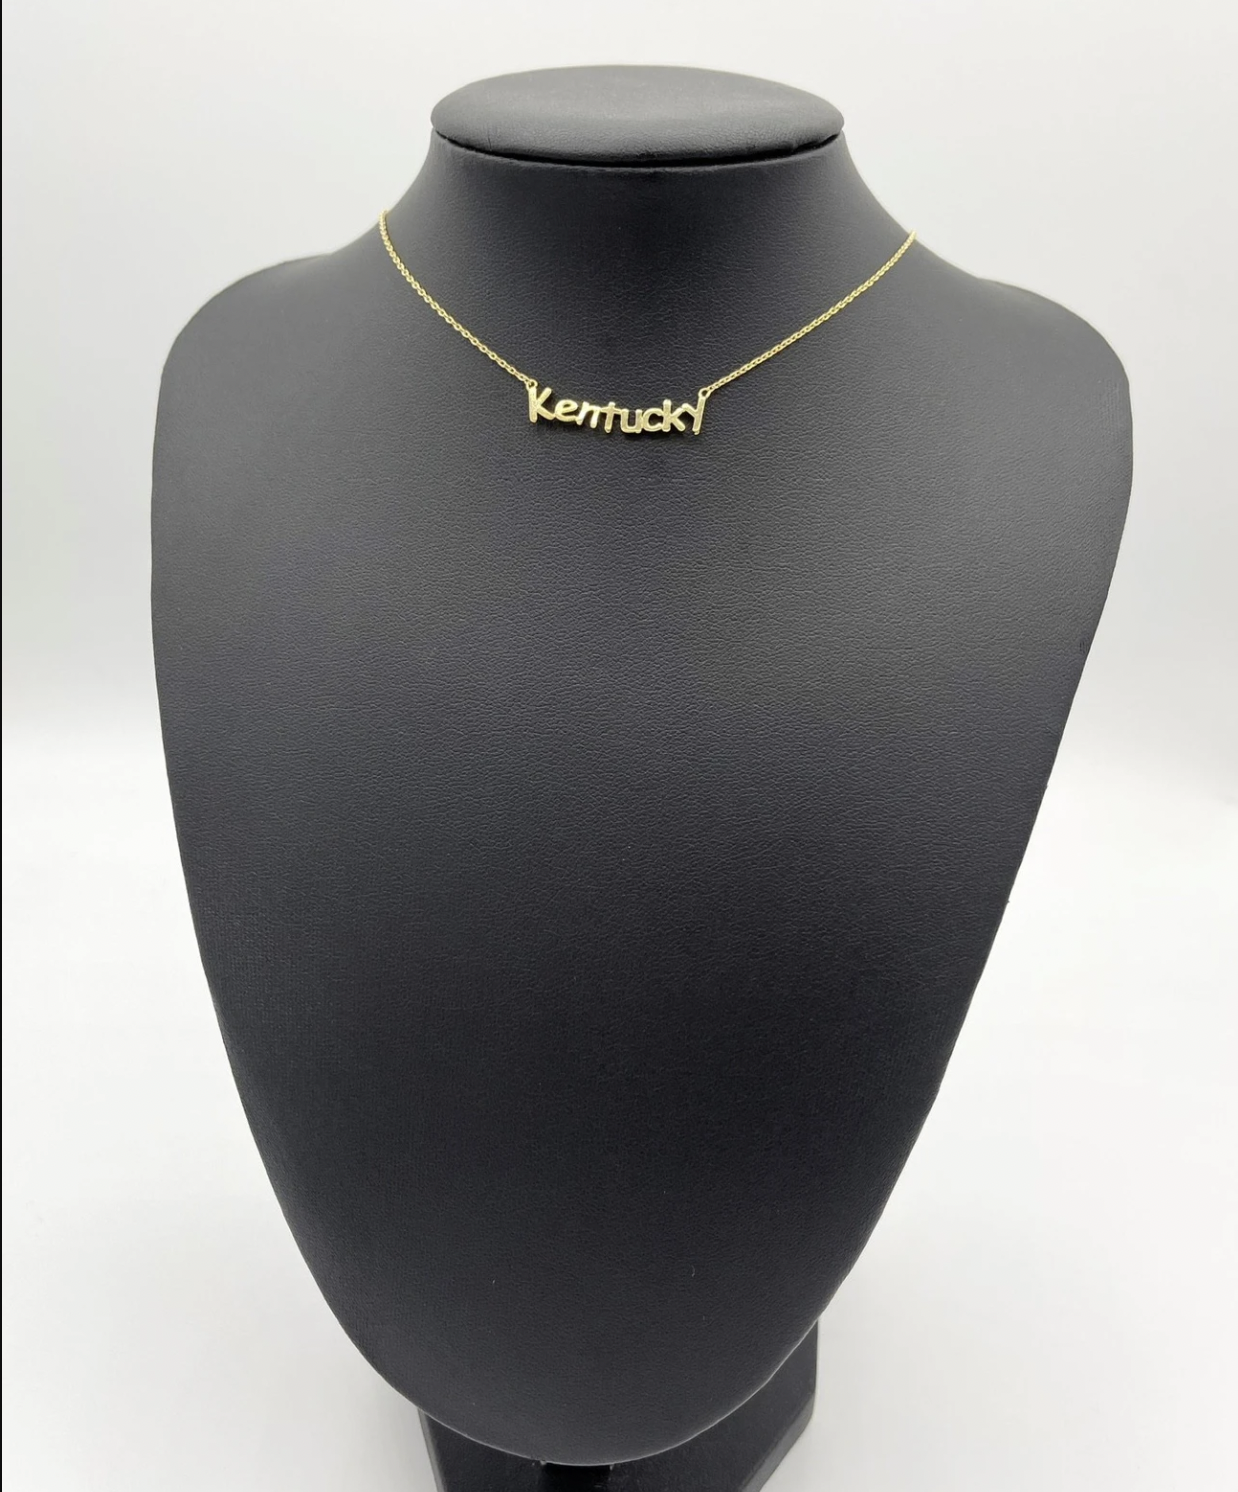 Indie Collection Kentucky Necklace